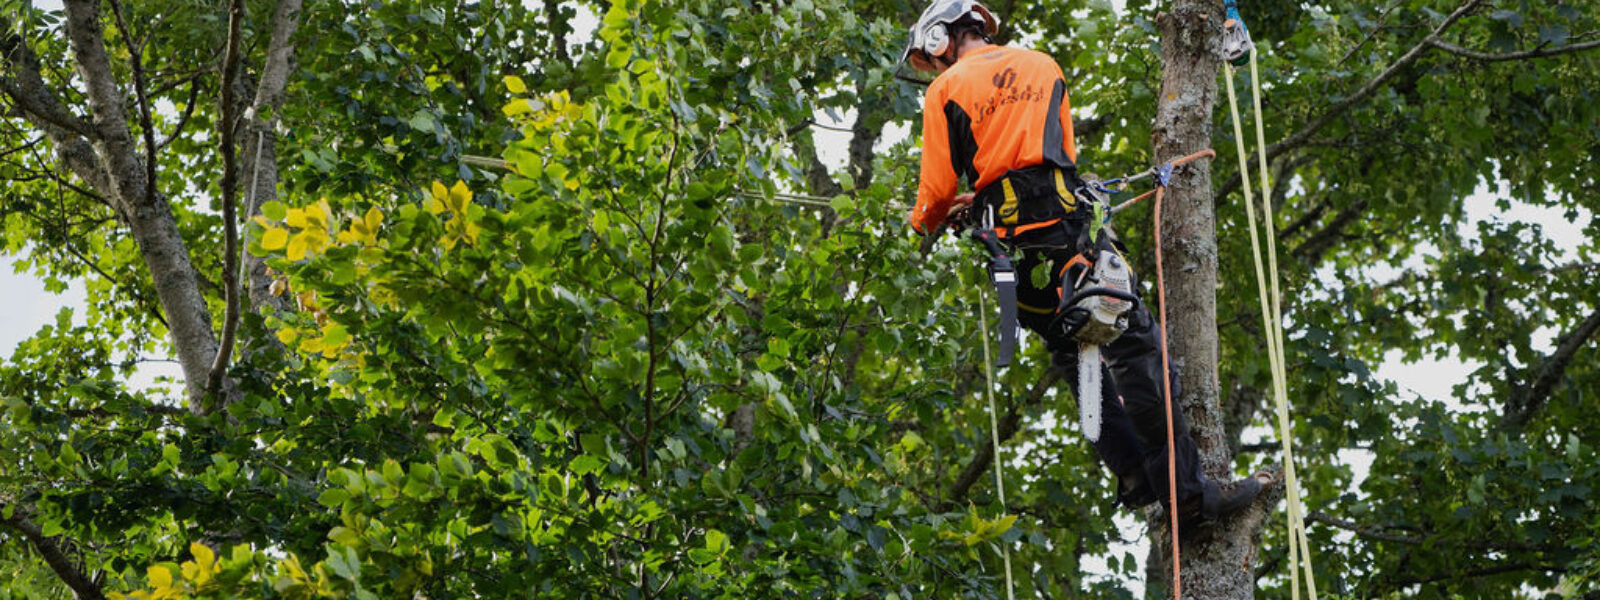 SCOTLAND'S TREE AND WOODLAND SPECIALISTS FOR OVER 20 YEARS